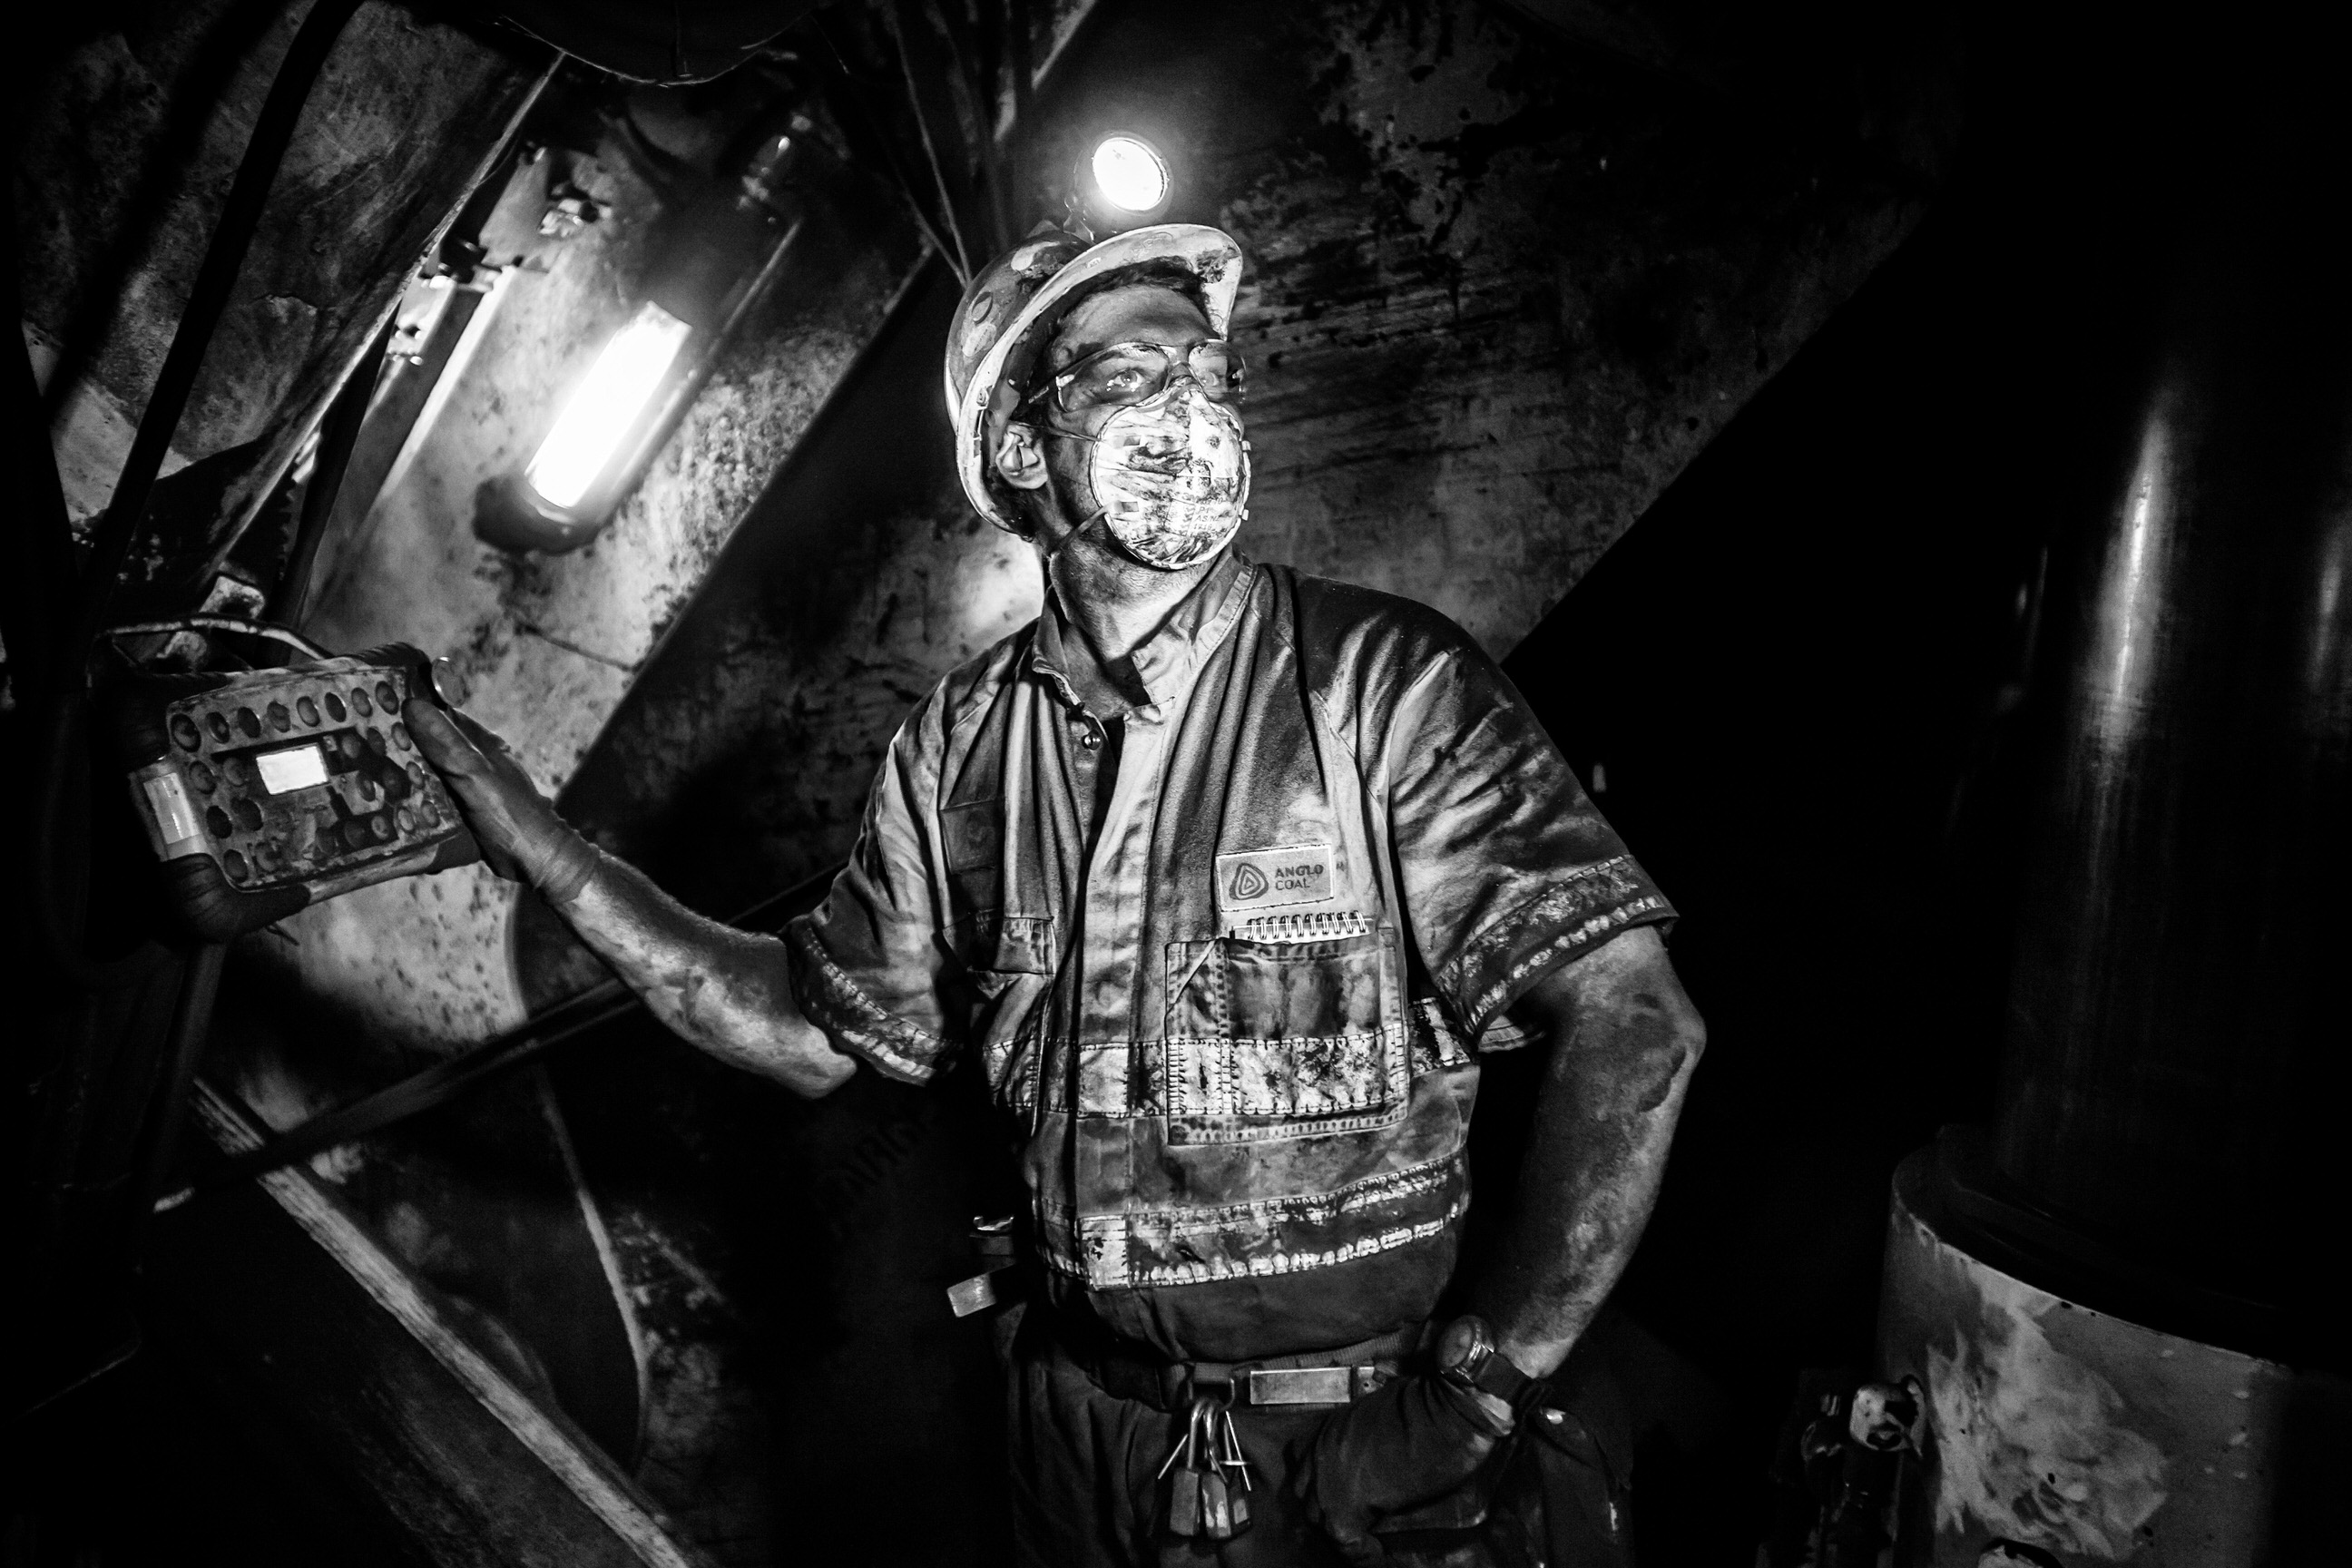 Commissioned - Mining Portraits - Ben Phillips Photography